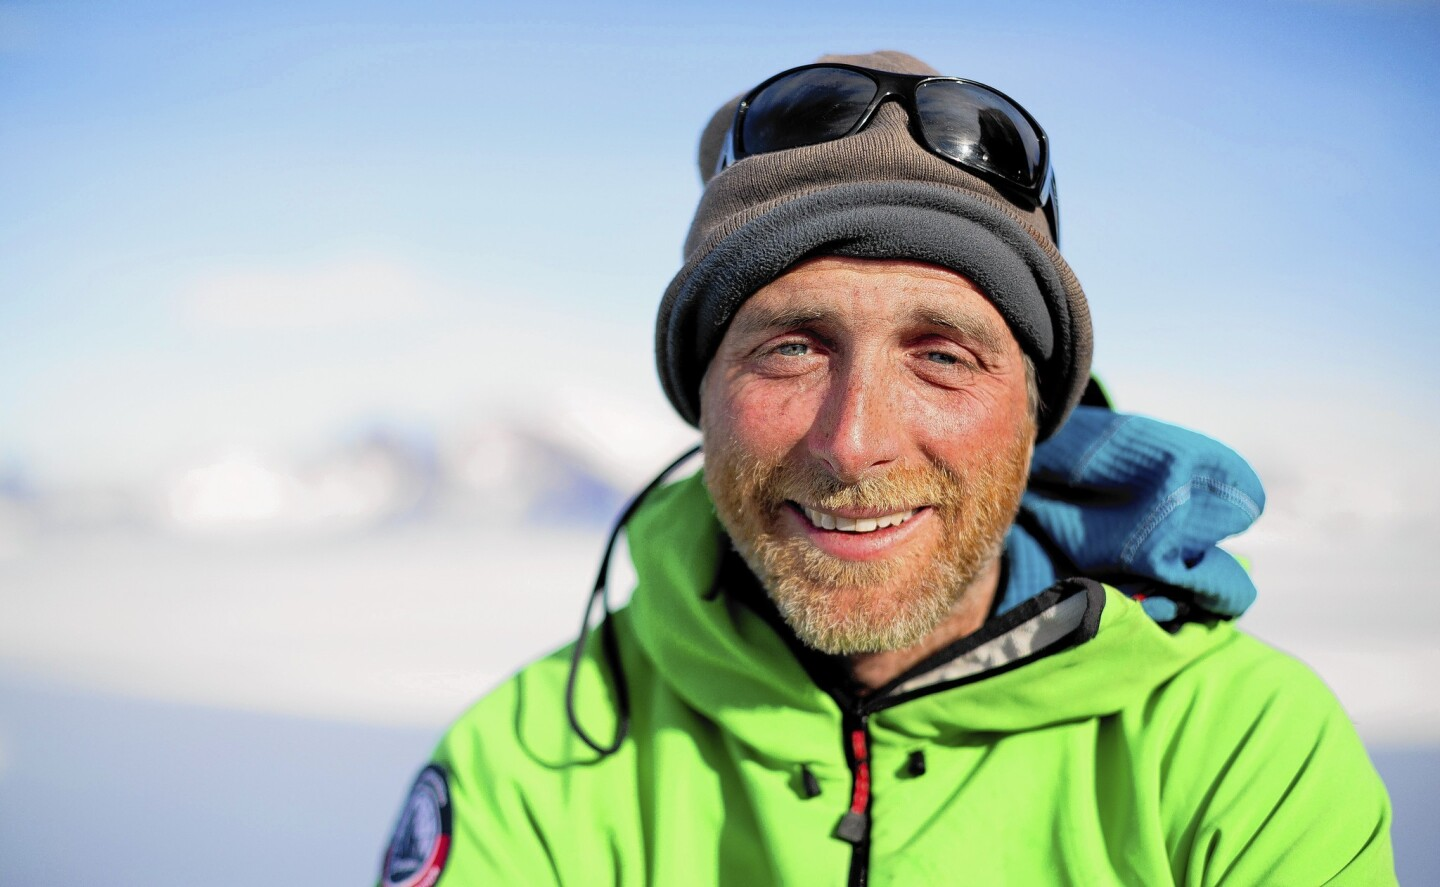 """Sean """"Stanley"""" Leary during an expedition to Antarctica; he was found dead March 23 in Zion National Park after a BASE jumping accident."""